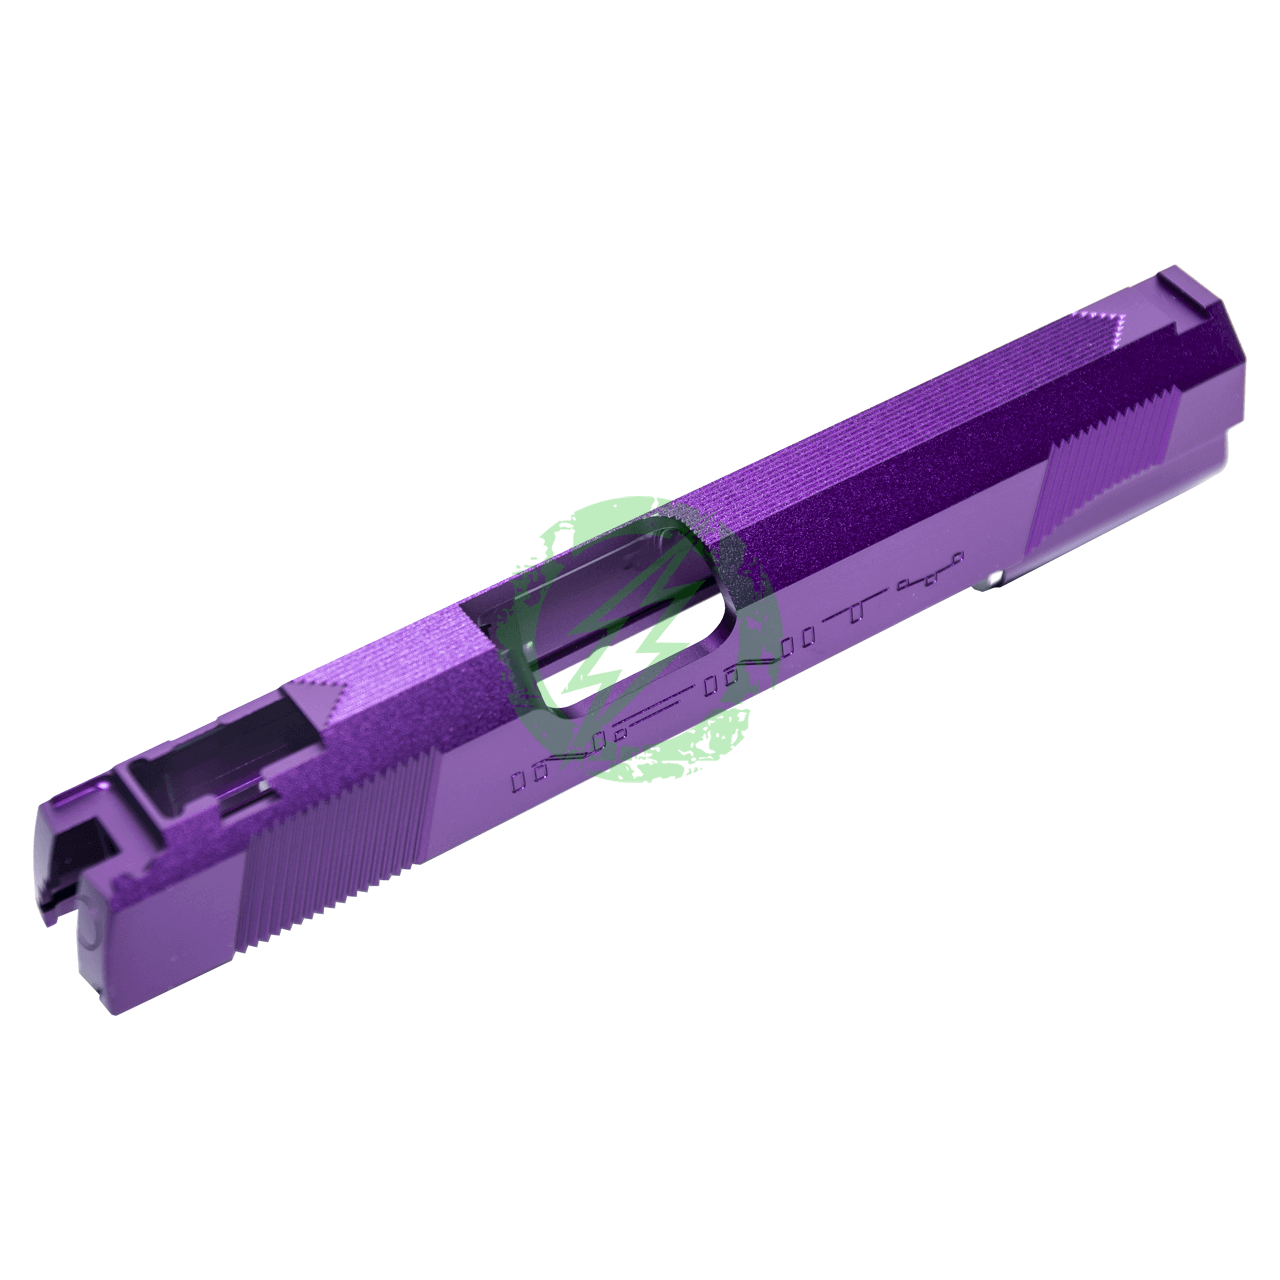 Airsoft Masterpiece Infinity Vintage Standard Slide | Hi-CAPA/1911 Purple Back